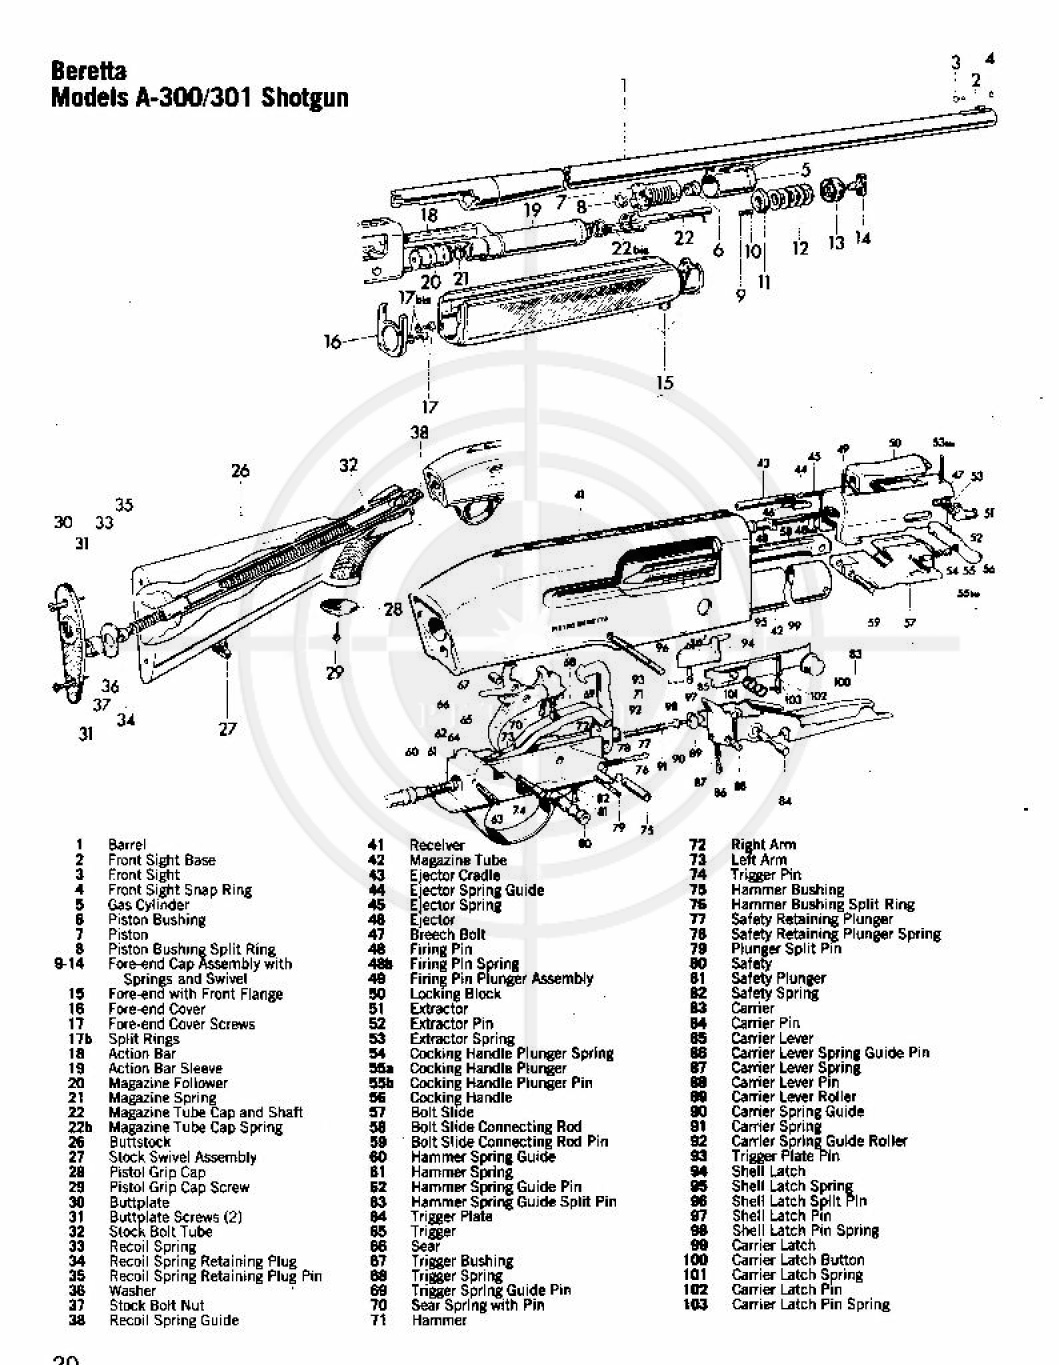 Mossberg 715t Parts Diagram as well Menu likewise Colt Detective Special Schematic also Glock in addition Lorcin L9mm. on colt 1908 380 parts diagram